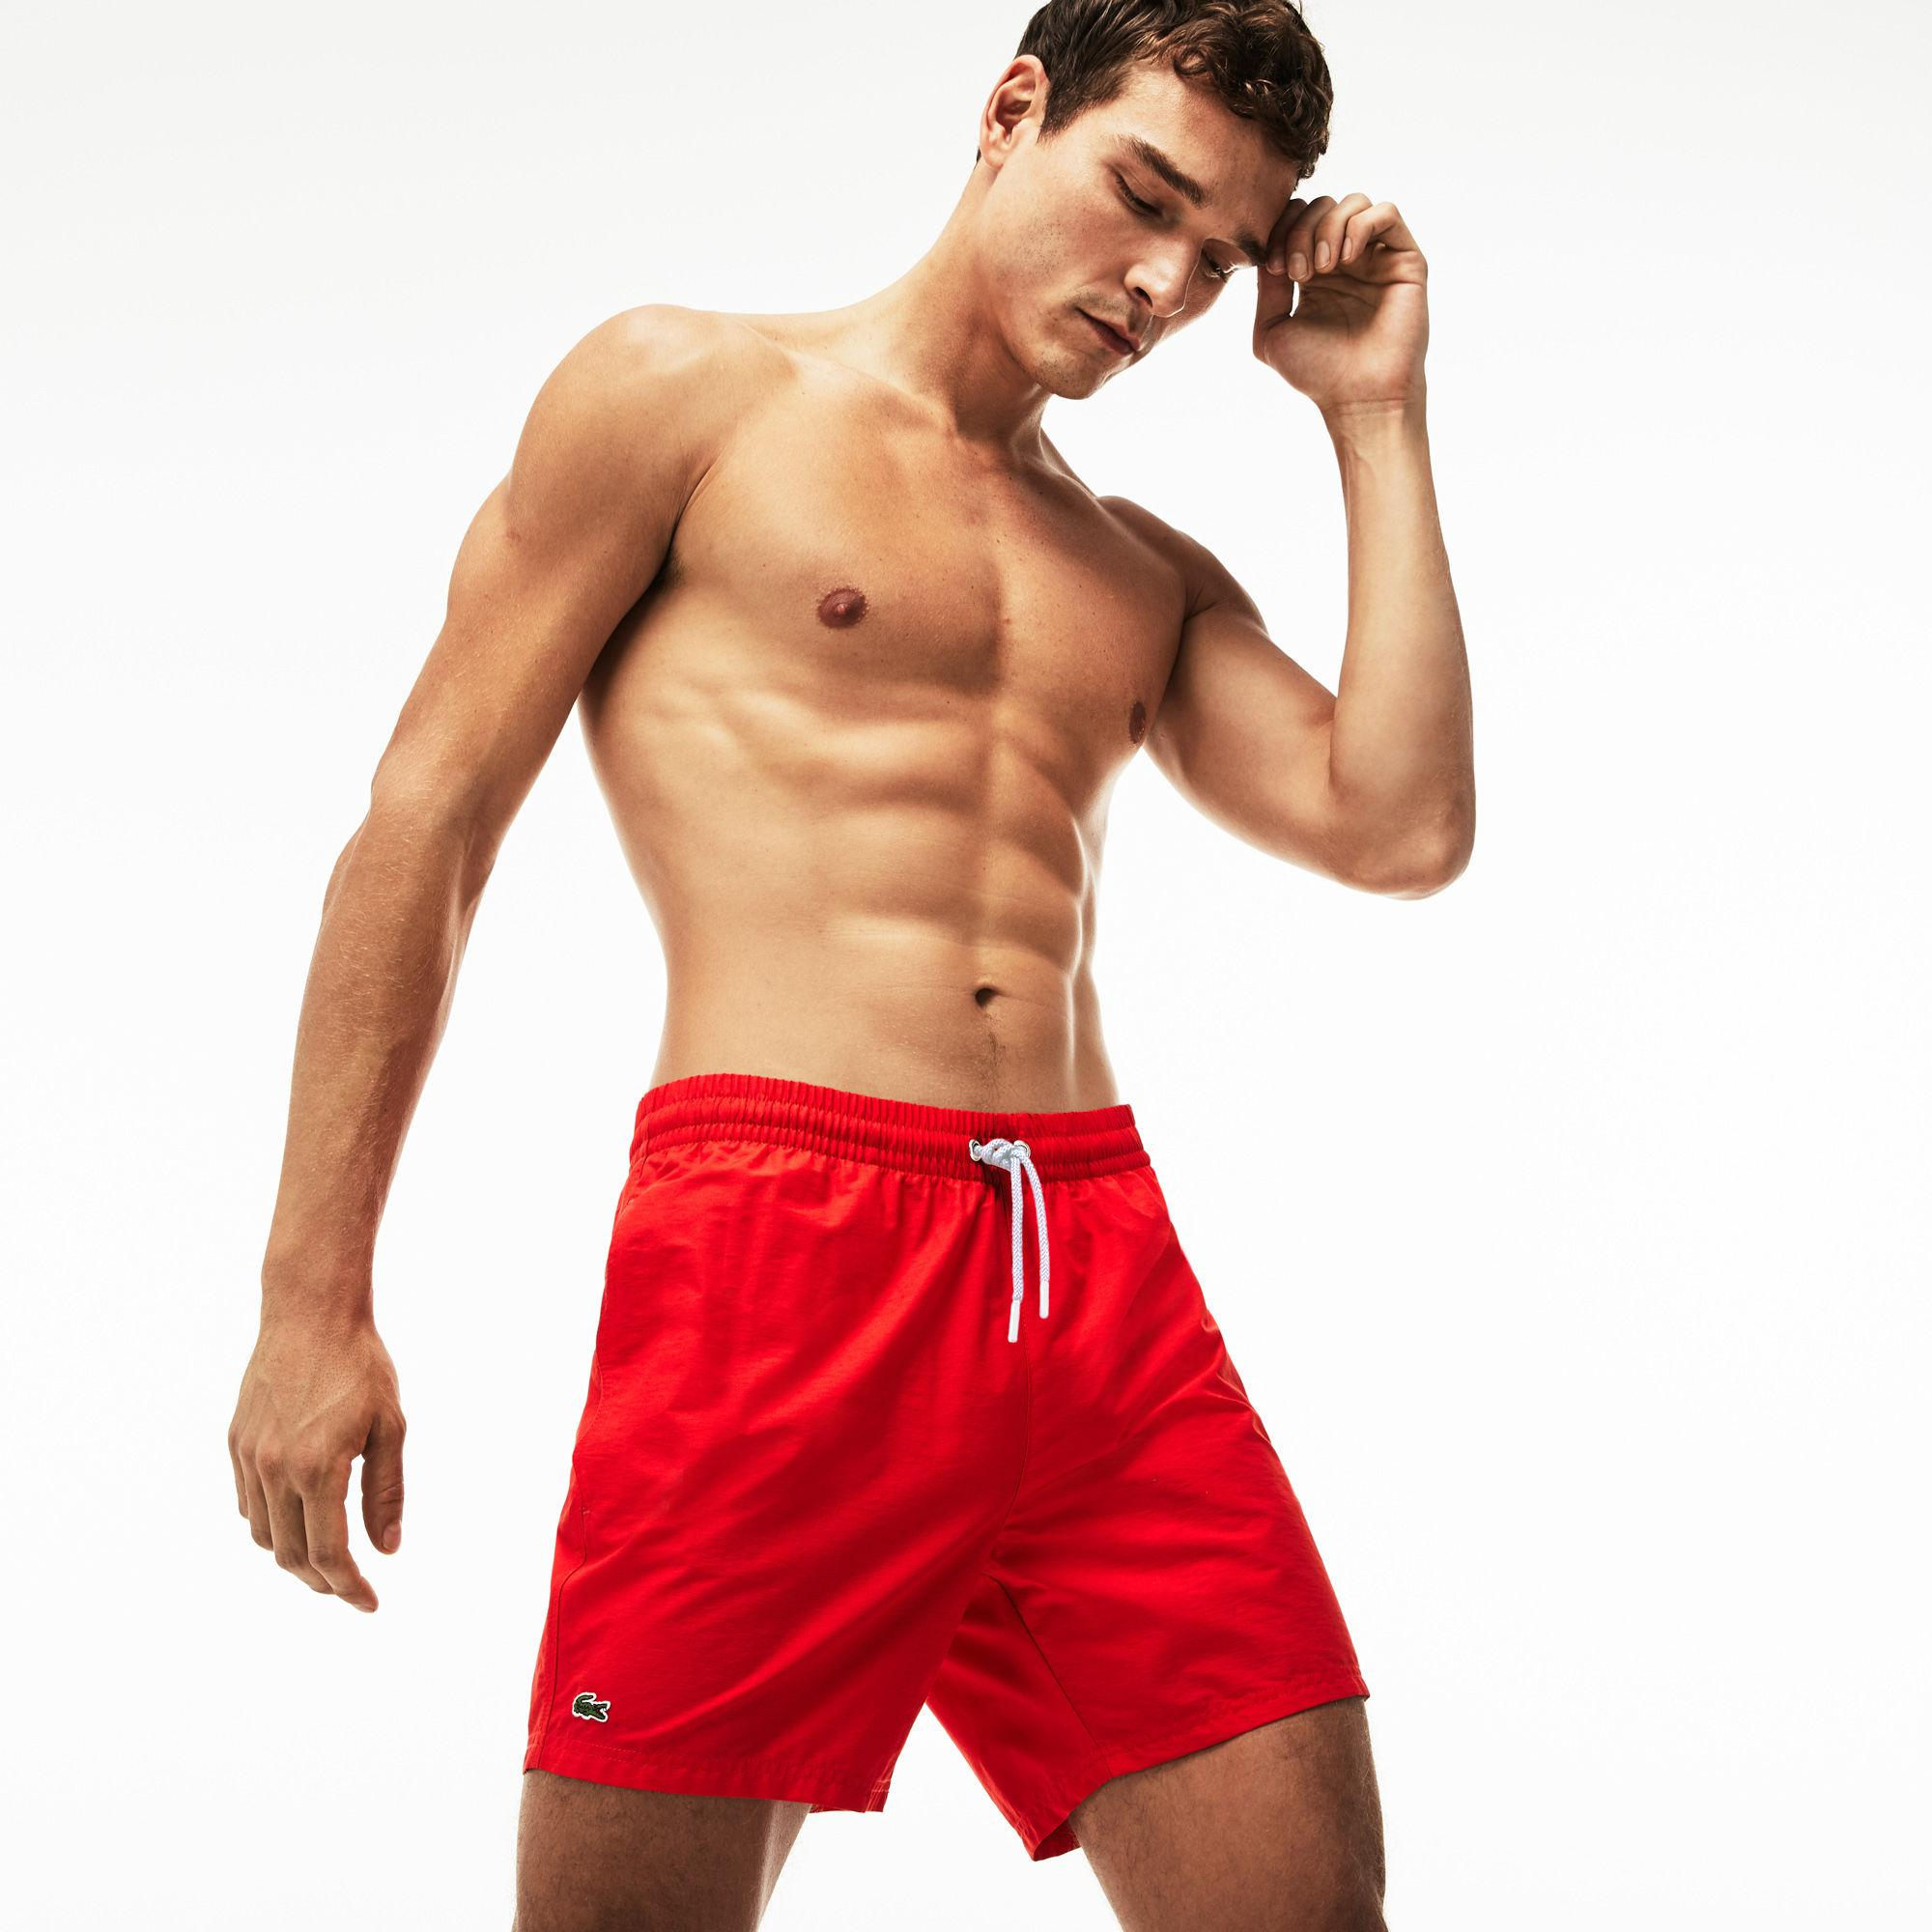 ebeec828ab Lyst - Lacoste Taffeta Swim Trunks in Red for Men